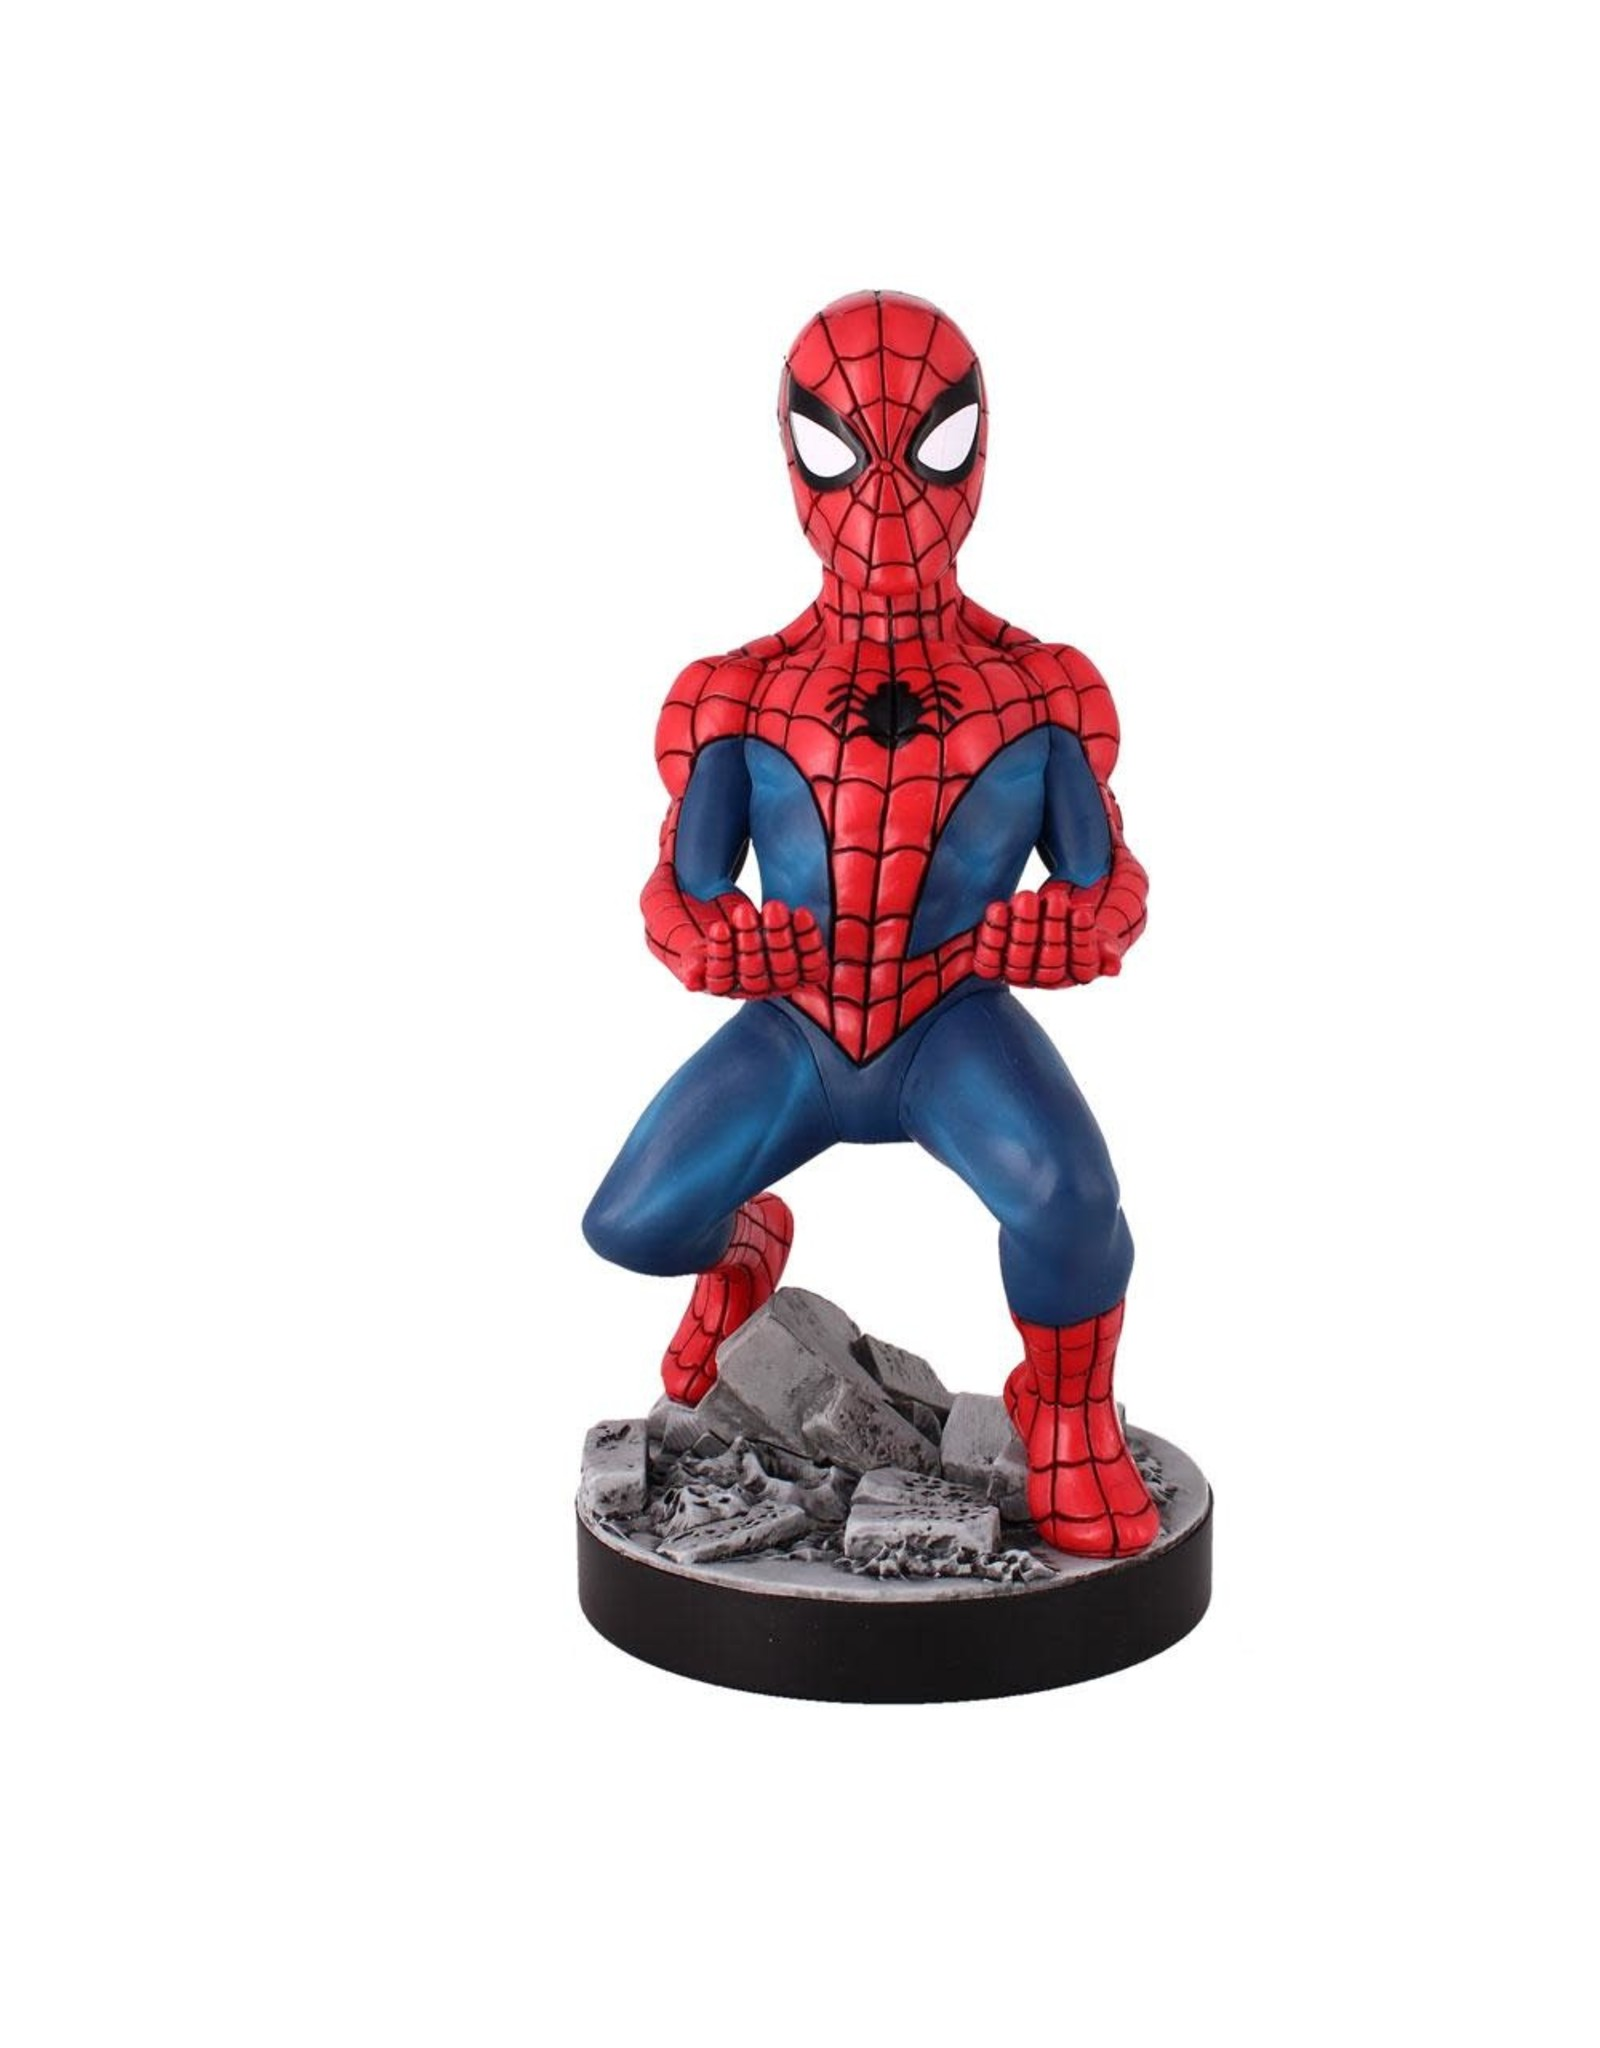 Exquisite Gaming SPIDER-MAN Cable Guys Charging Holder 20cm